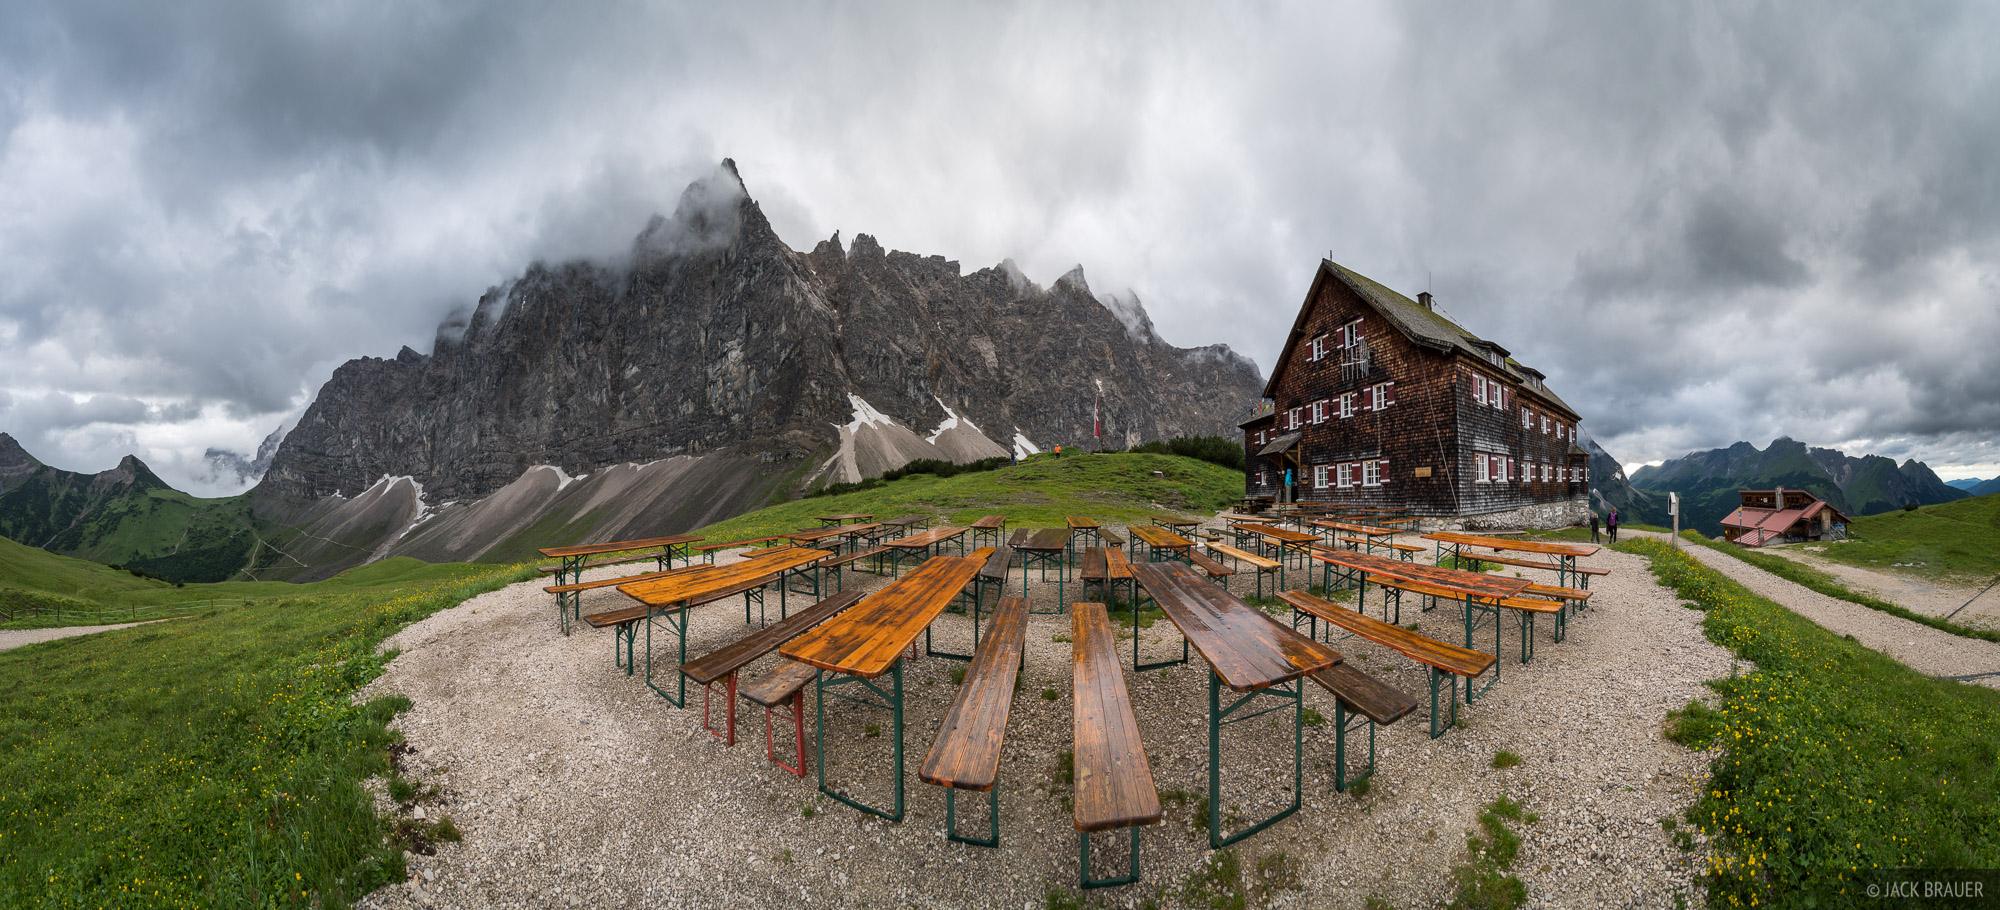 The Falkenhütte patio offers a jaw dropping view of the vertical mountain walls of the Karwendel range. Unfortunately rainy...